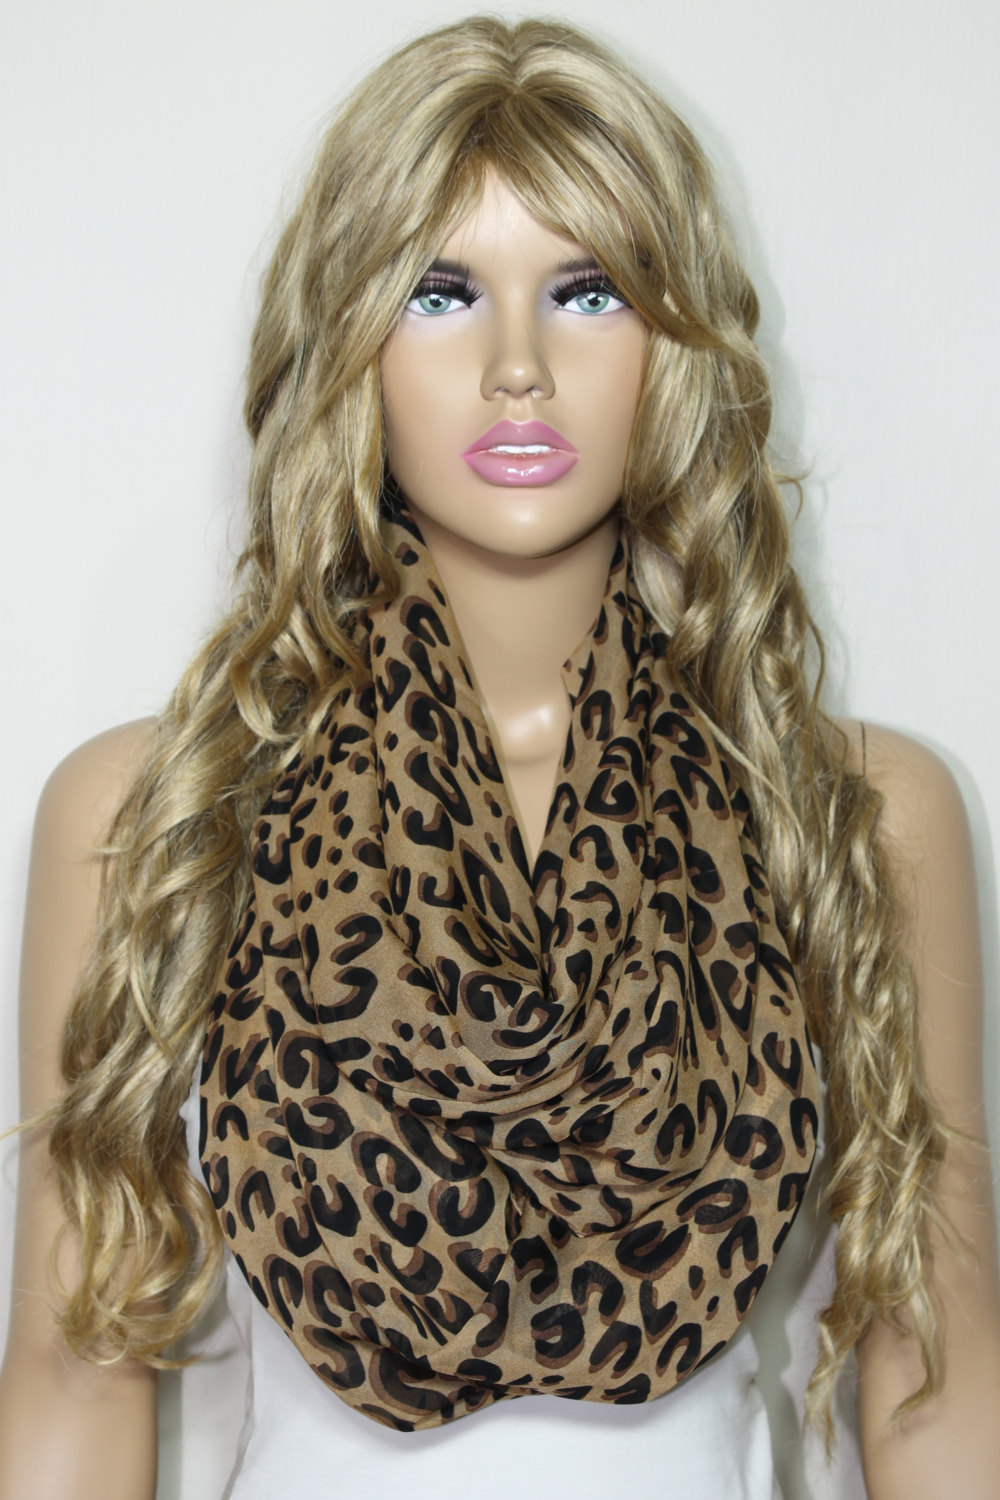 Infinity Scarf, Leopard Scarf, Chiffon So Soft Lightweight Infinity Scarf Loop Scarf Leopard Print Scarf Mother's Day Gift For Her-ESCHERPE